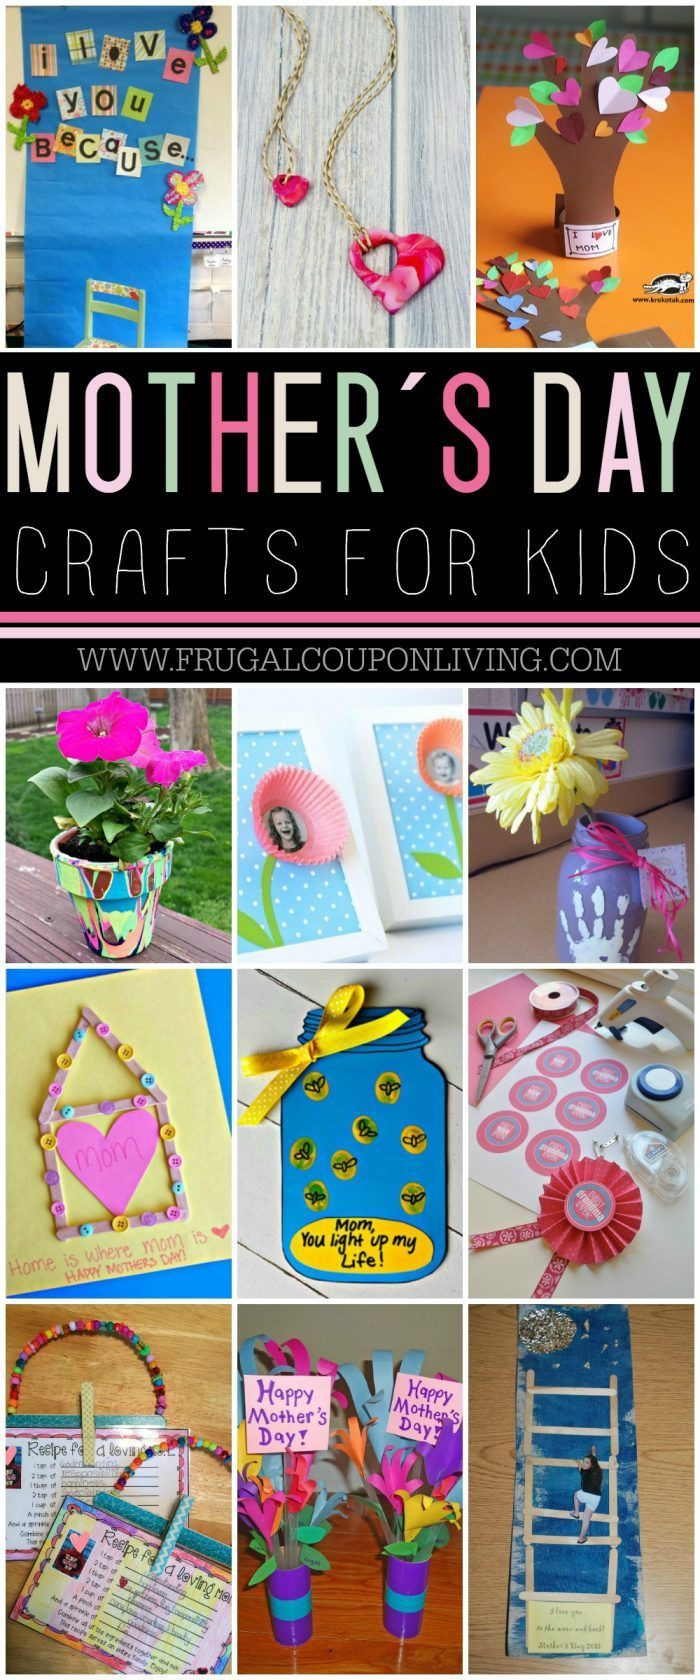 diy crafts : mother's day crafts for kids: mother's day